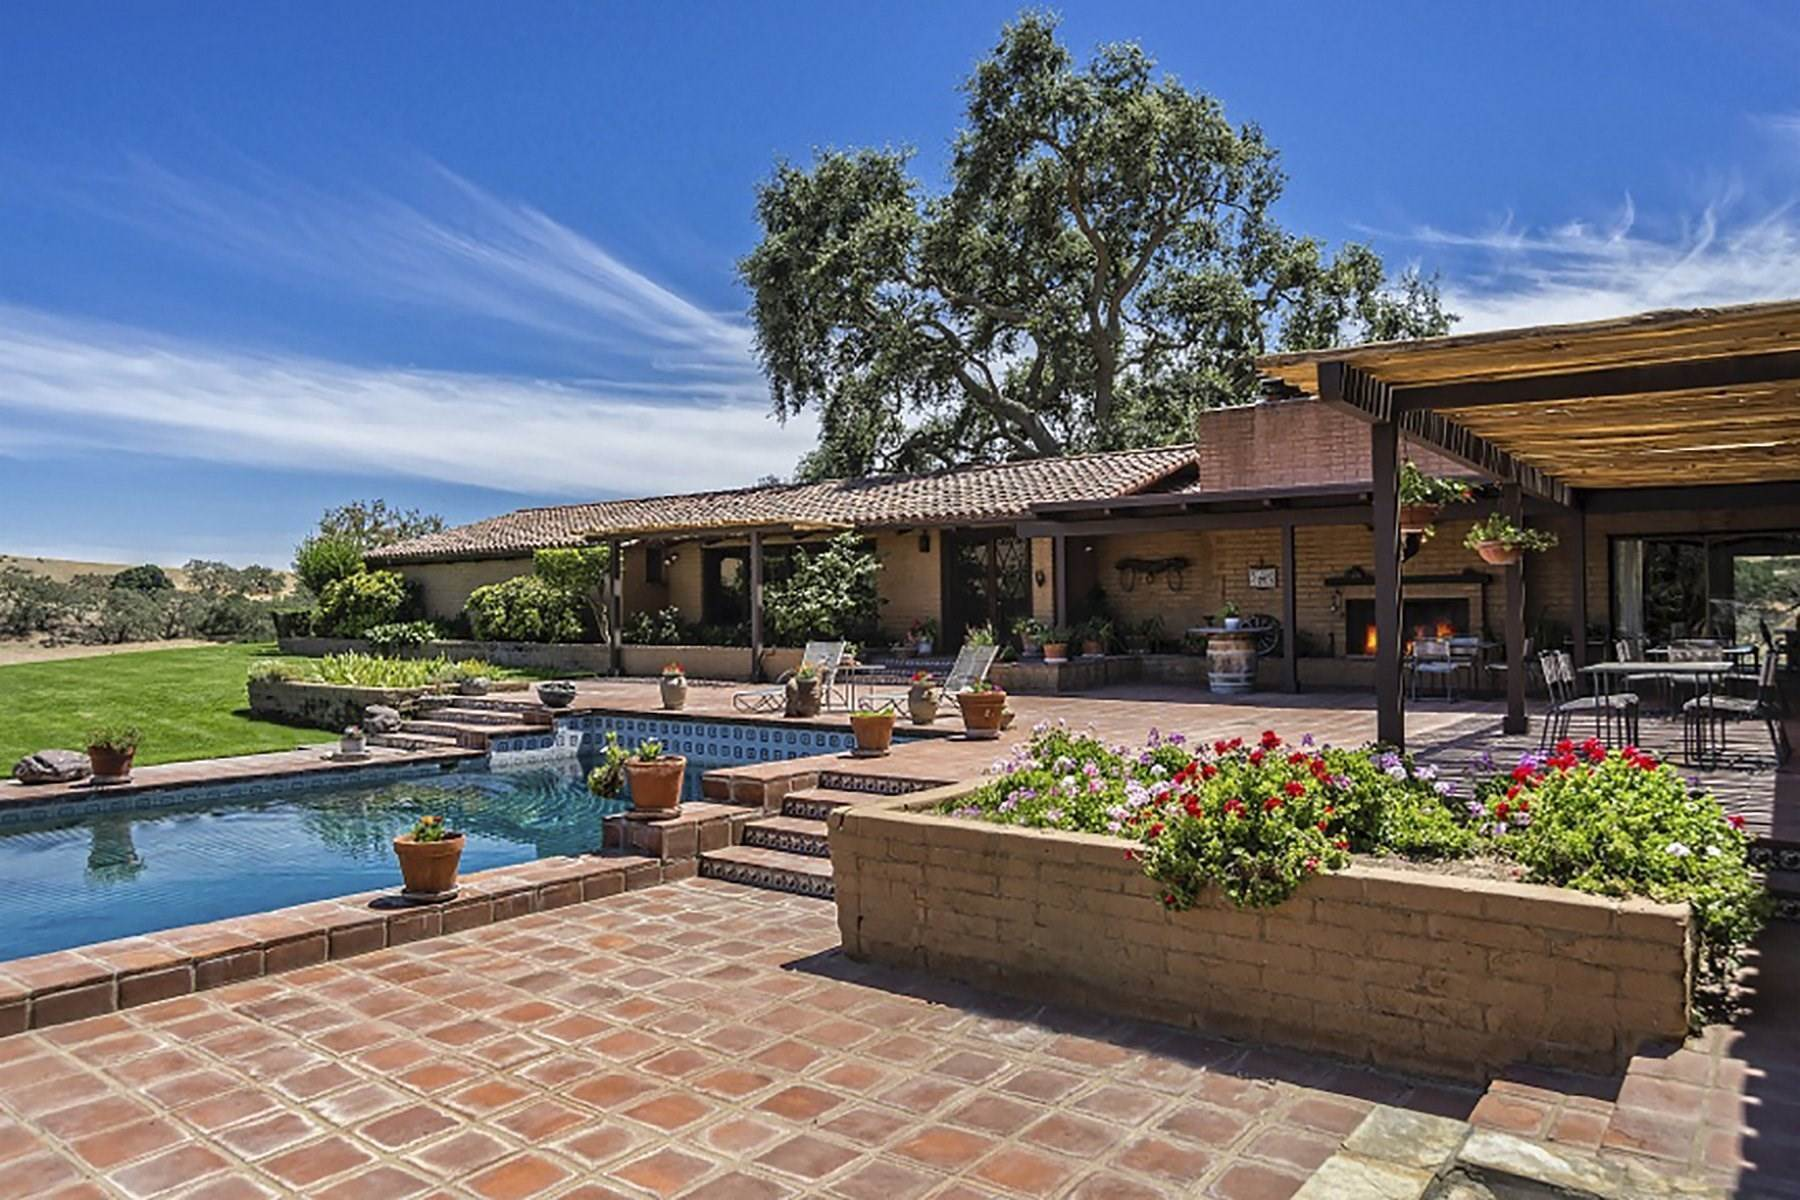 Vineyard Real Estate for Sale at Foxen Canyon Classic 5999 Foxen Canyon Road Santa Ynez, California 93460 United States